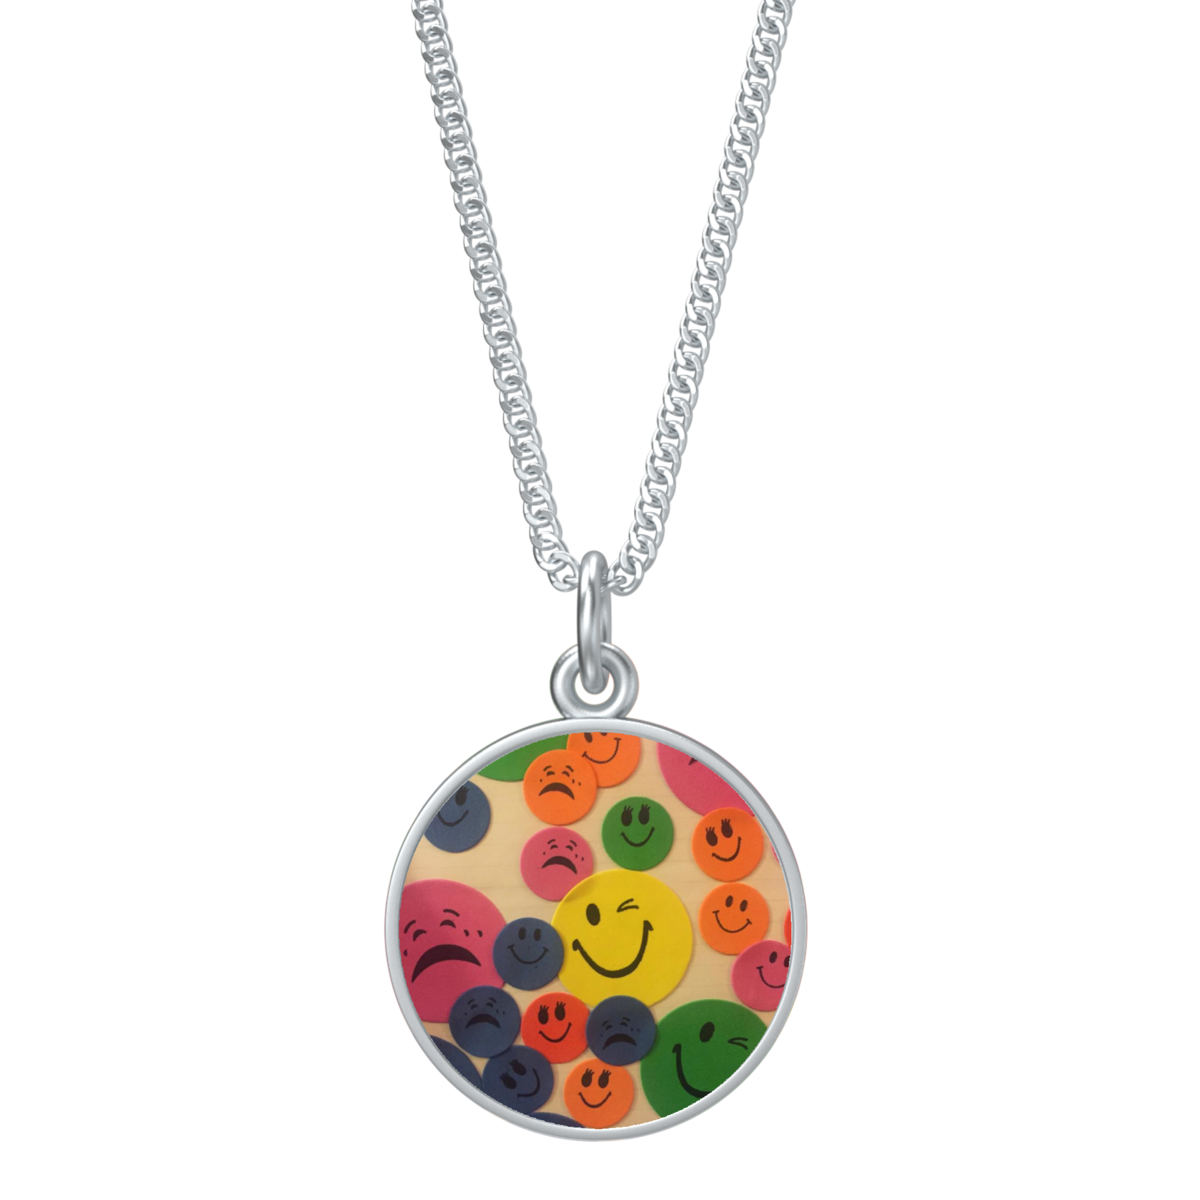 Kaya's Emojis Coin Pendant With Kenton Station Chain - 16in in silver - product image